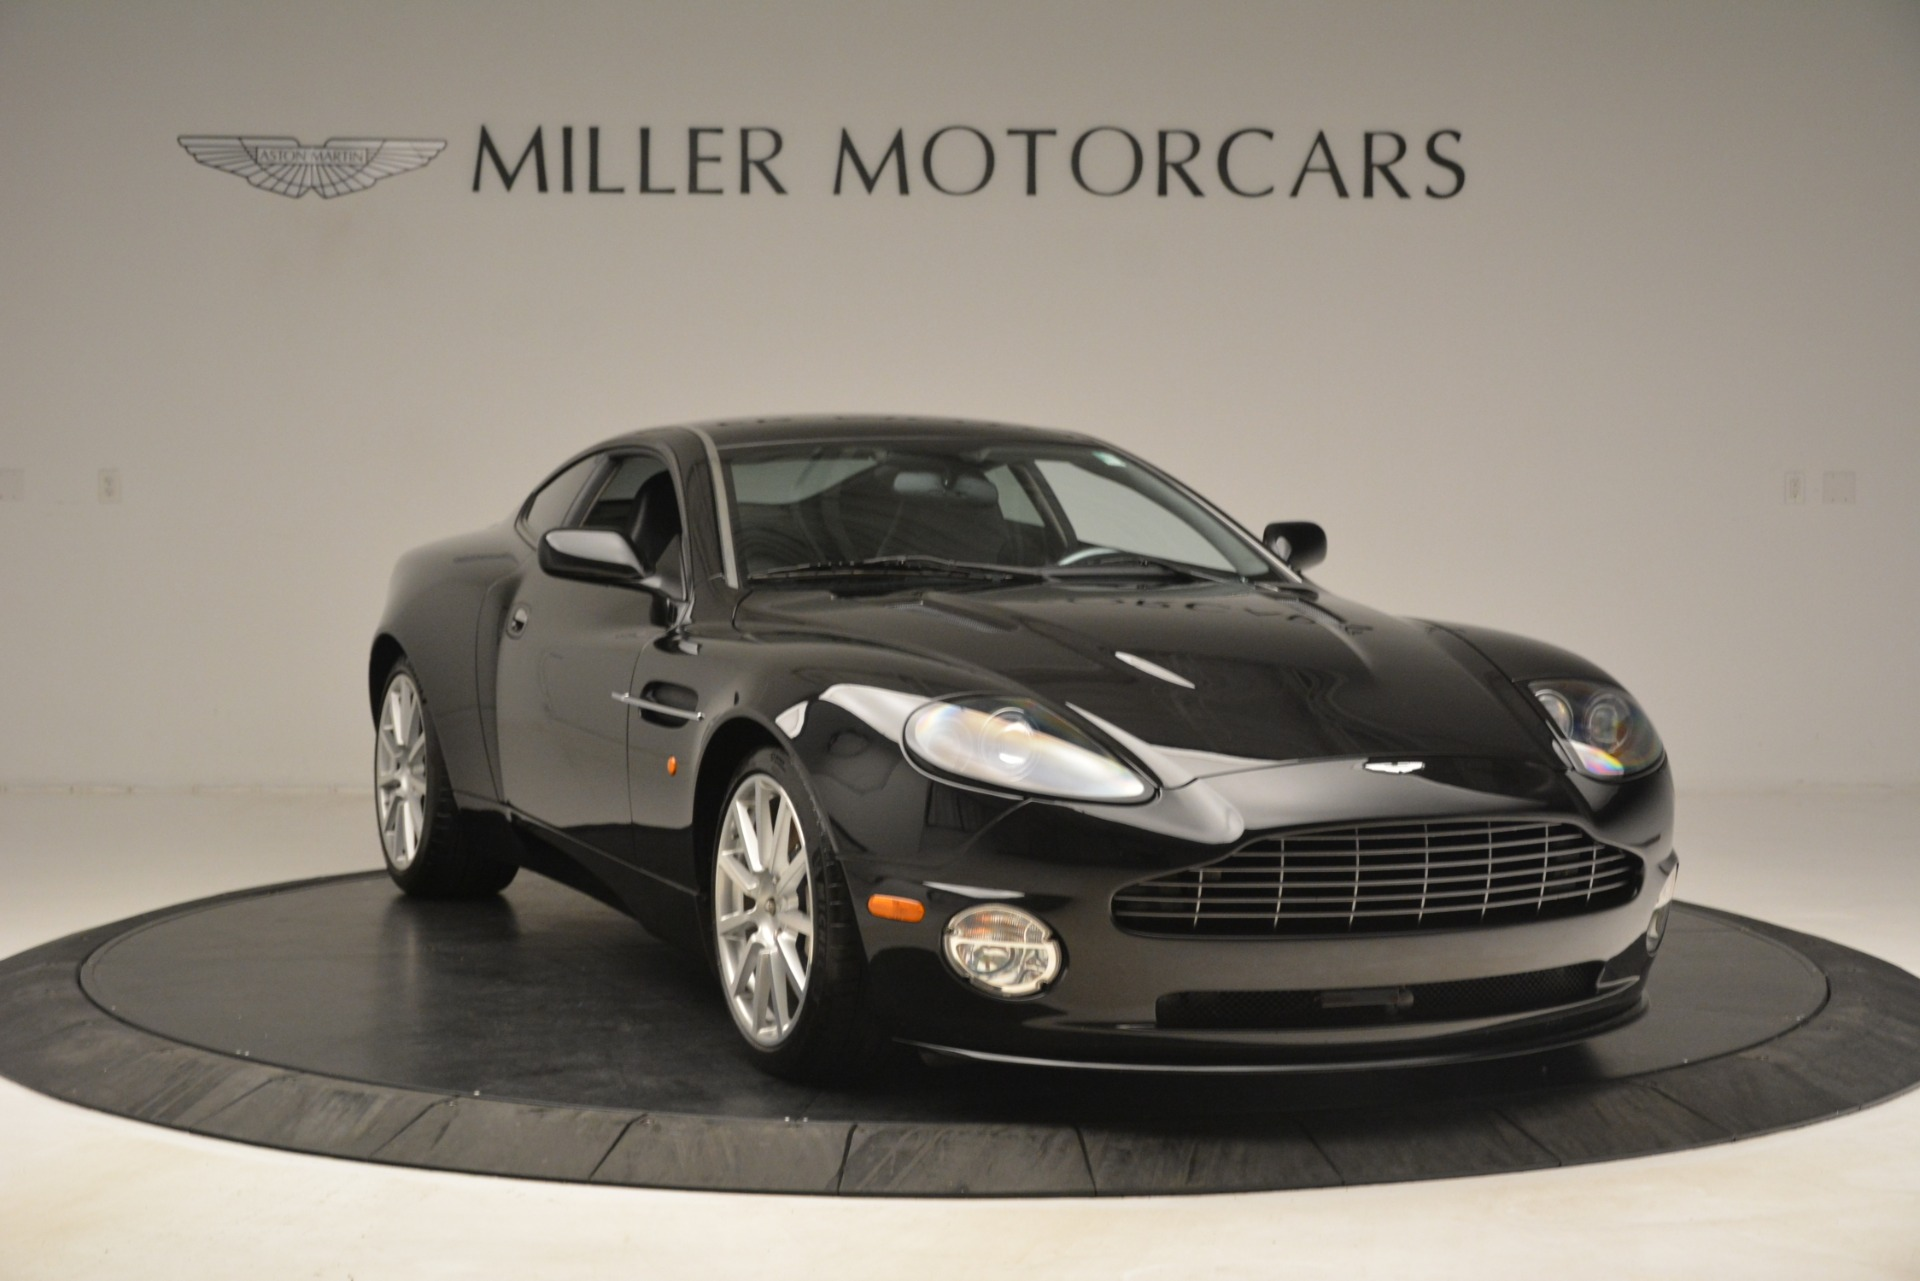 Used 2005 Aston Martin V12 Vanquish S Coupe For Sale In Westport, CT 3218_p11